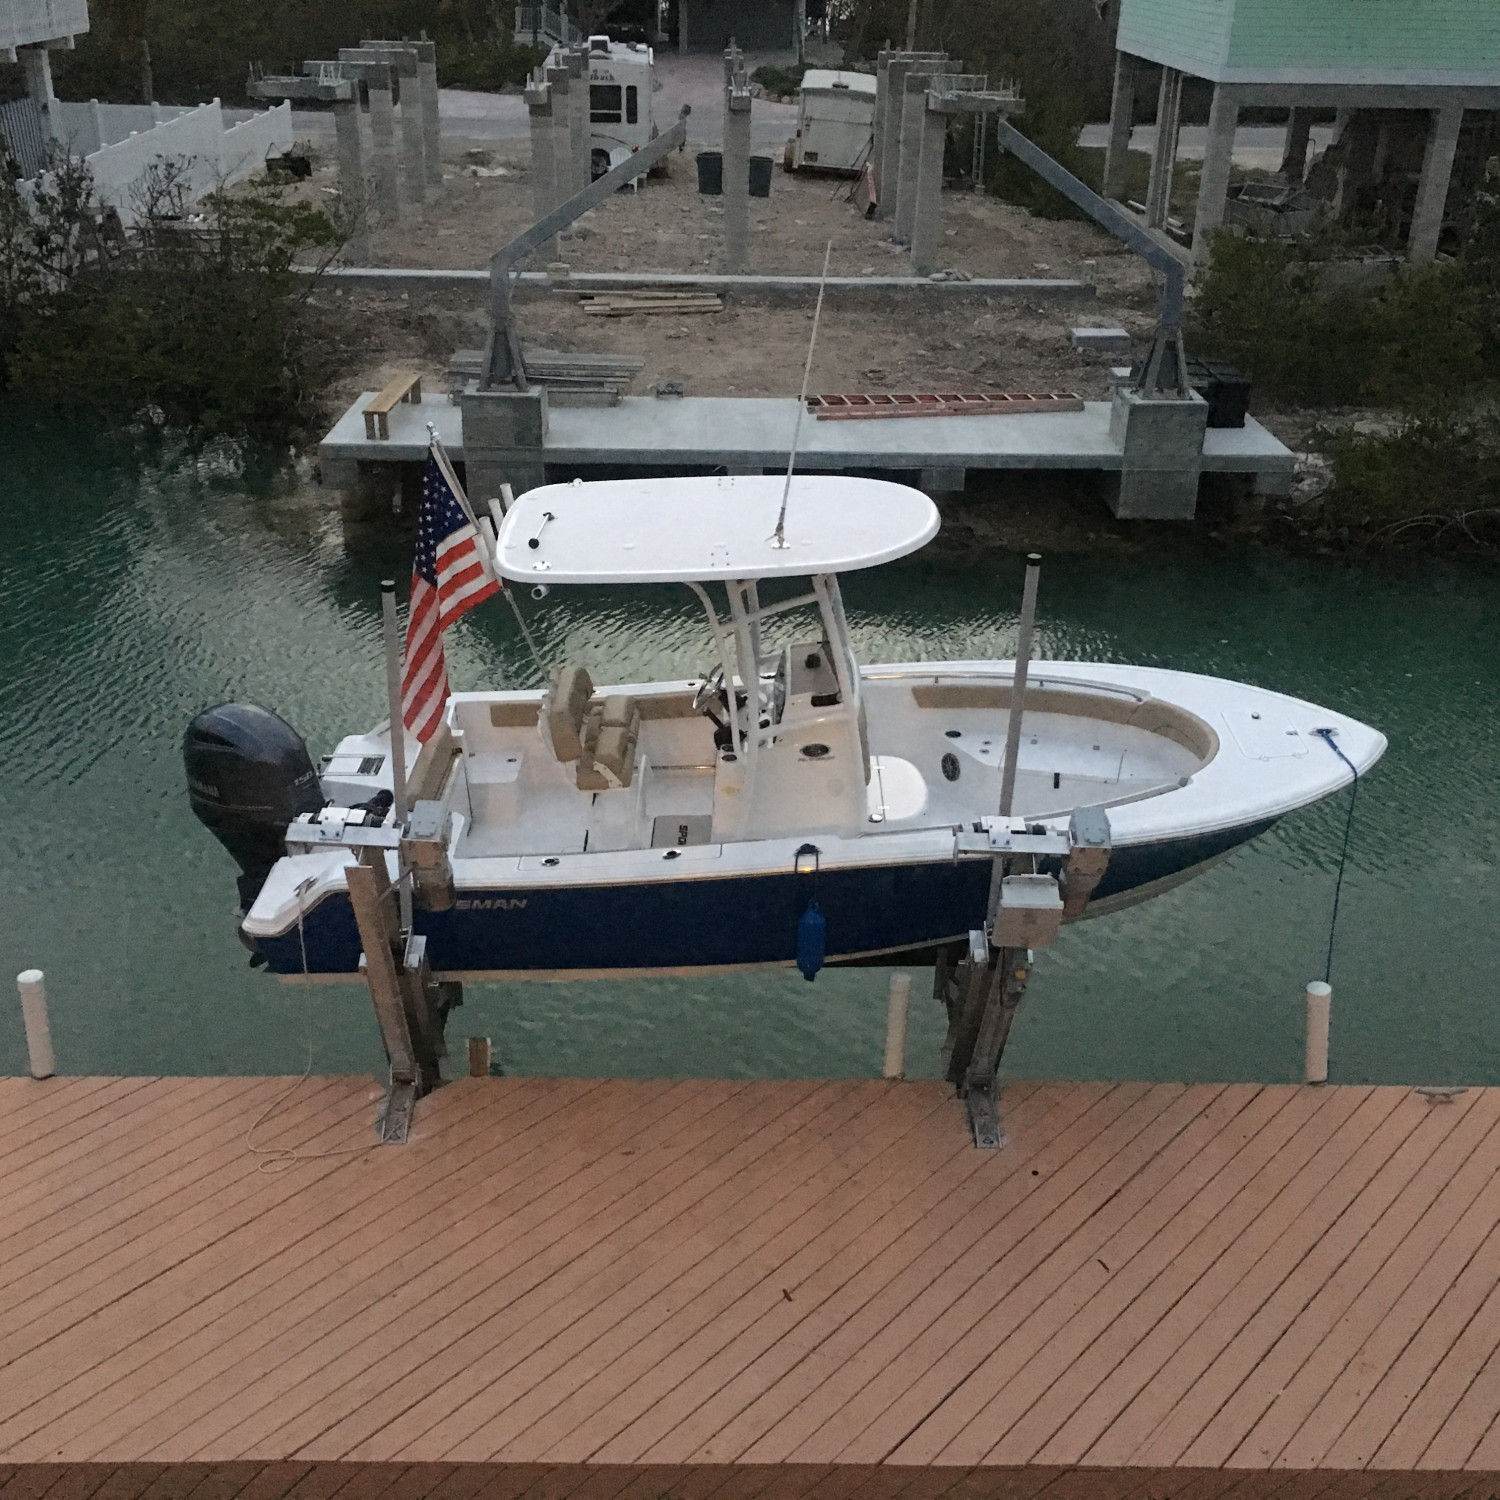 Title: Up on her lift - On board their Sportsman Open 212 Center Console - Location: Cudjoe key. Participating in the Photo Contest #SportsmanFebruary2018